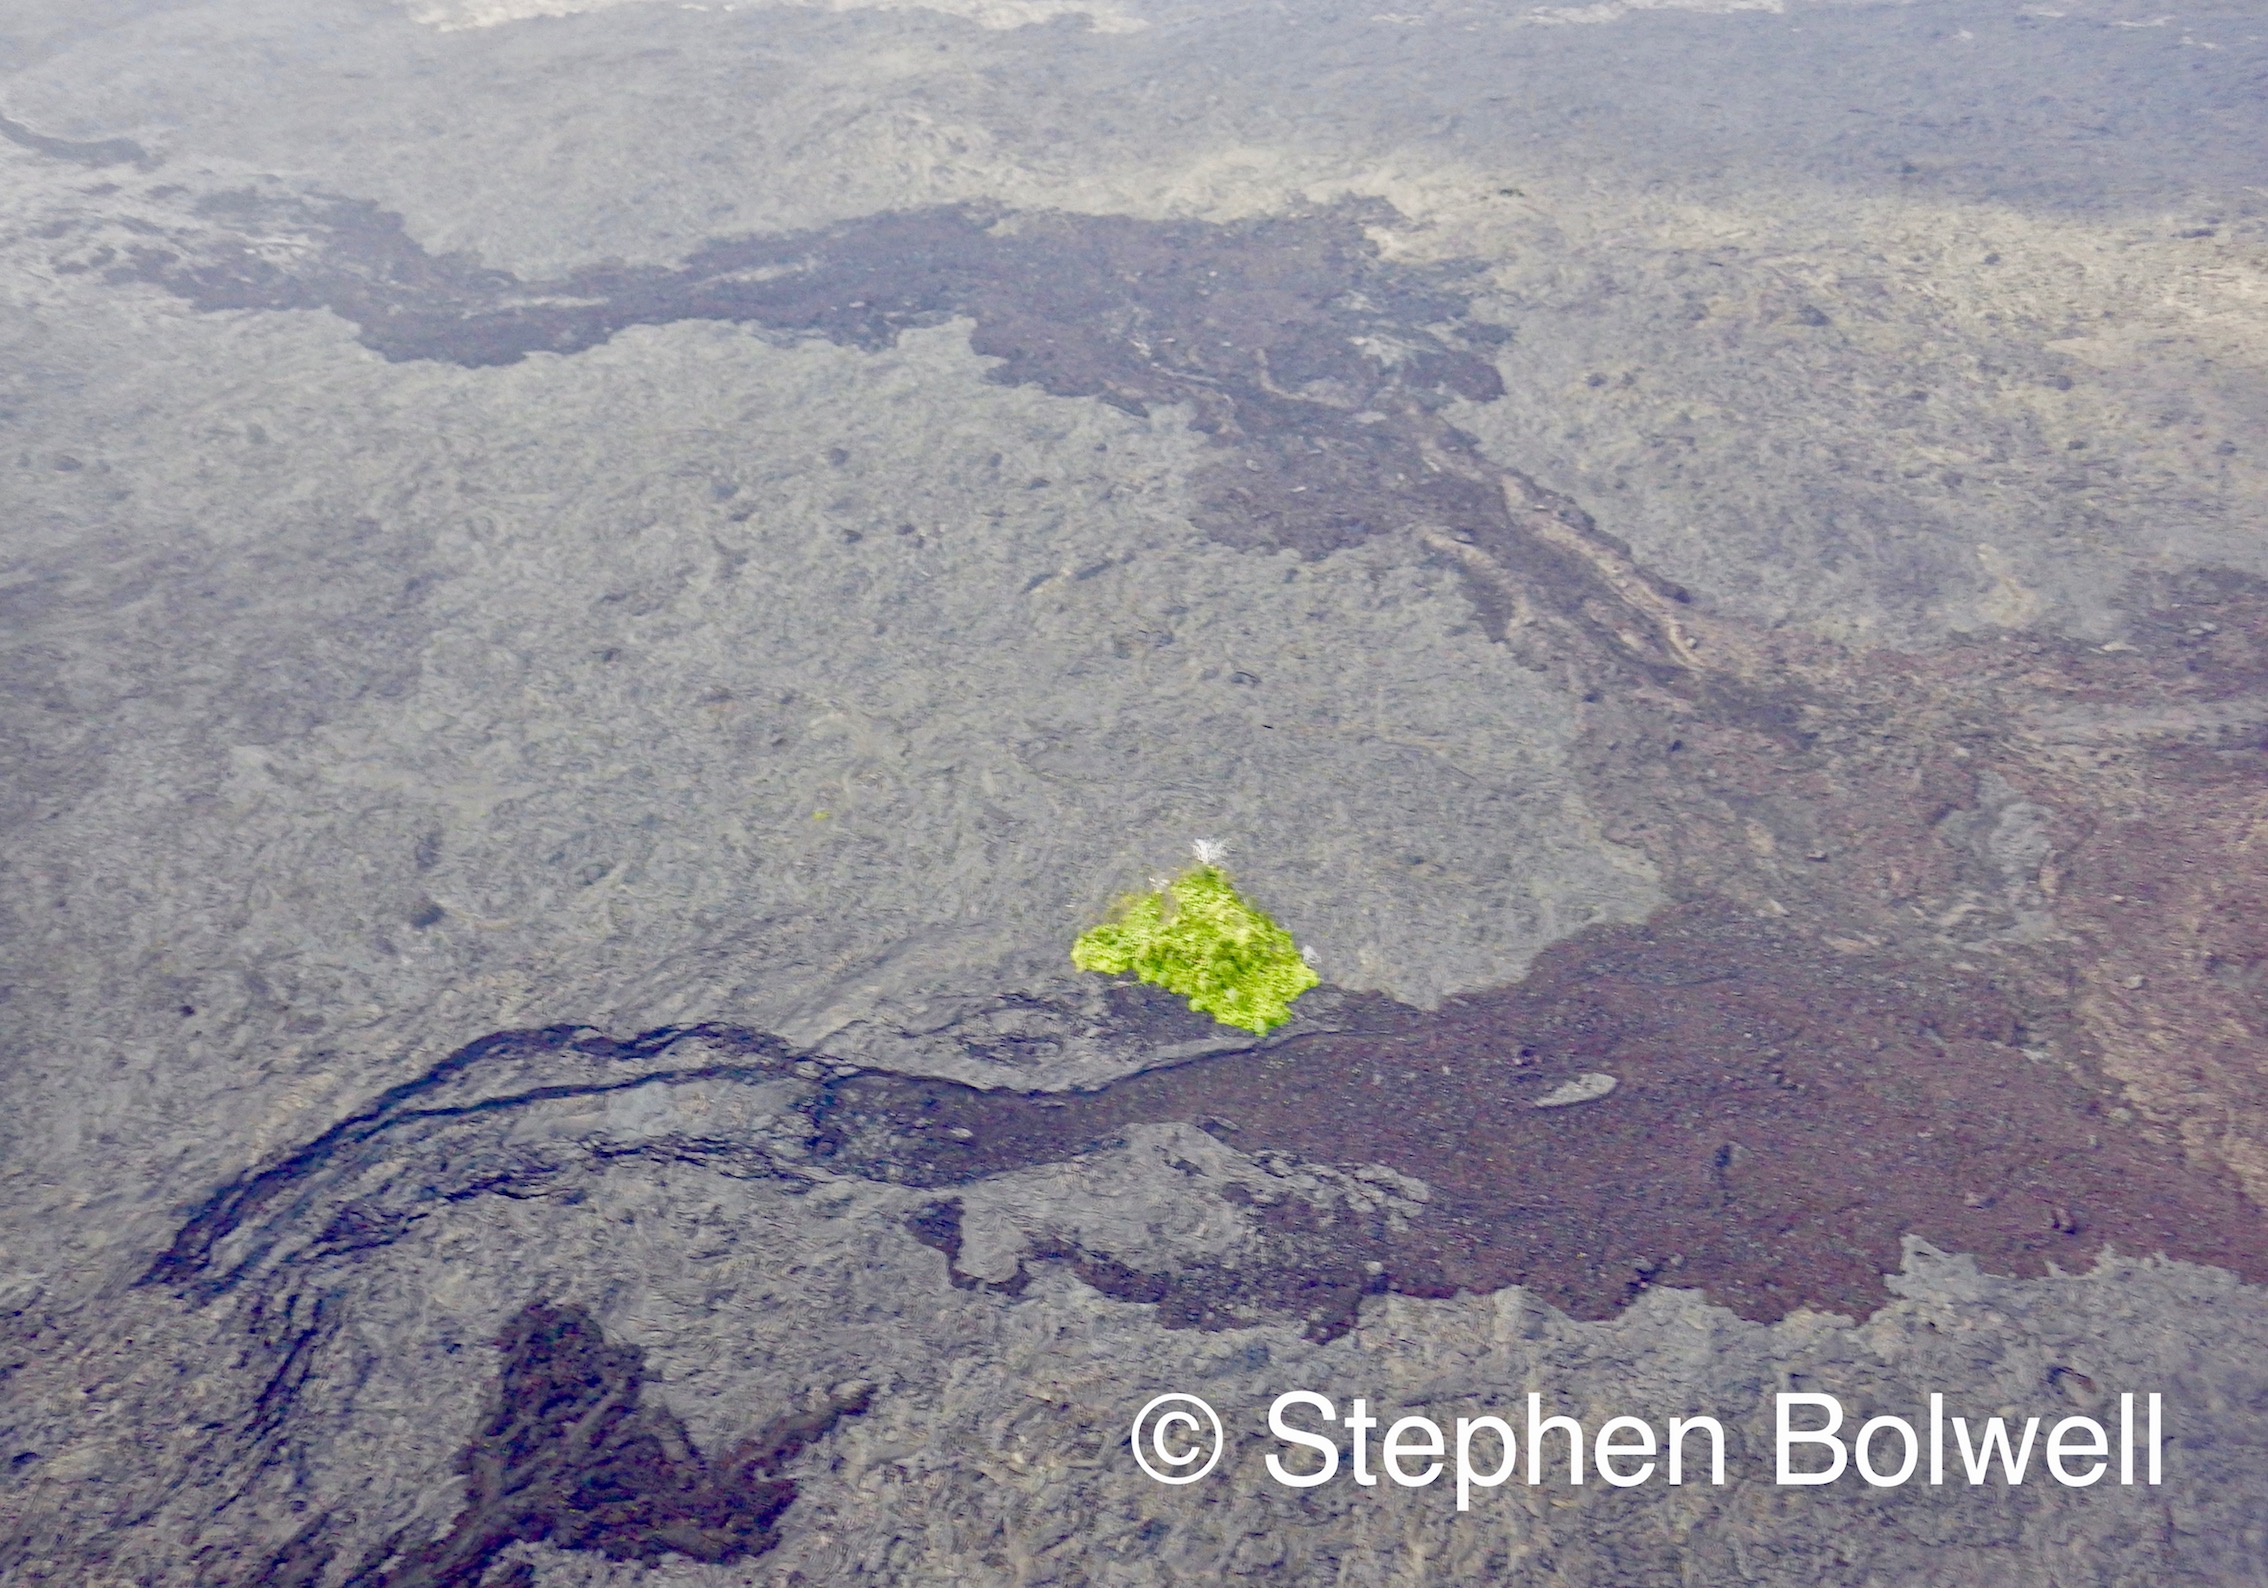 Like water lava flows to the lowest point and high ground often preserves natural areas and if they are large enough to remain viable, will retain species to eventually recolonise the area.